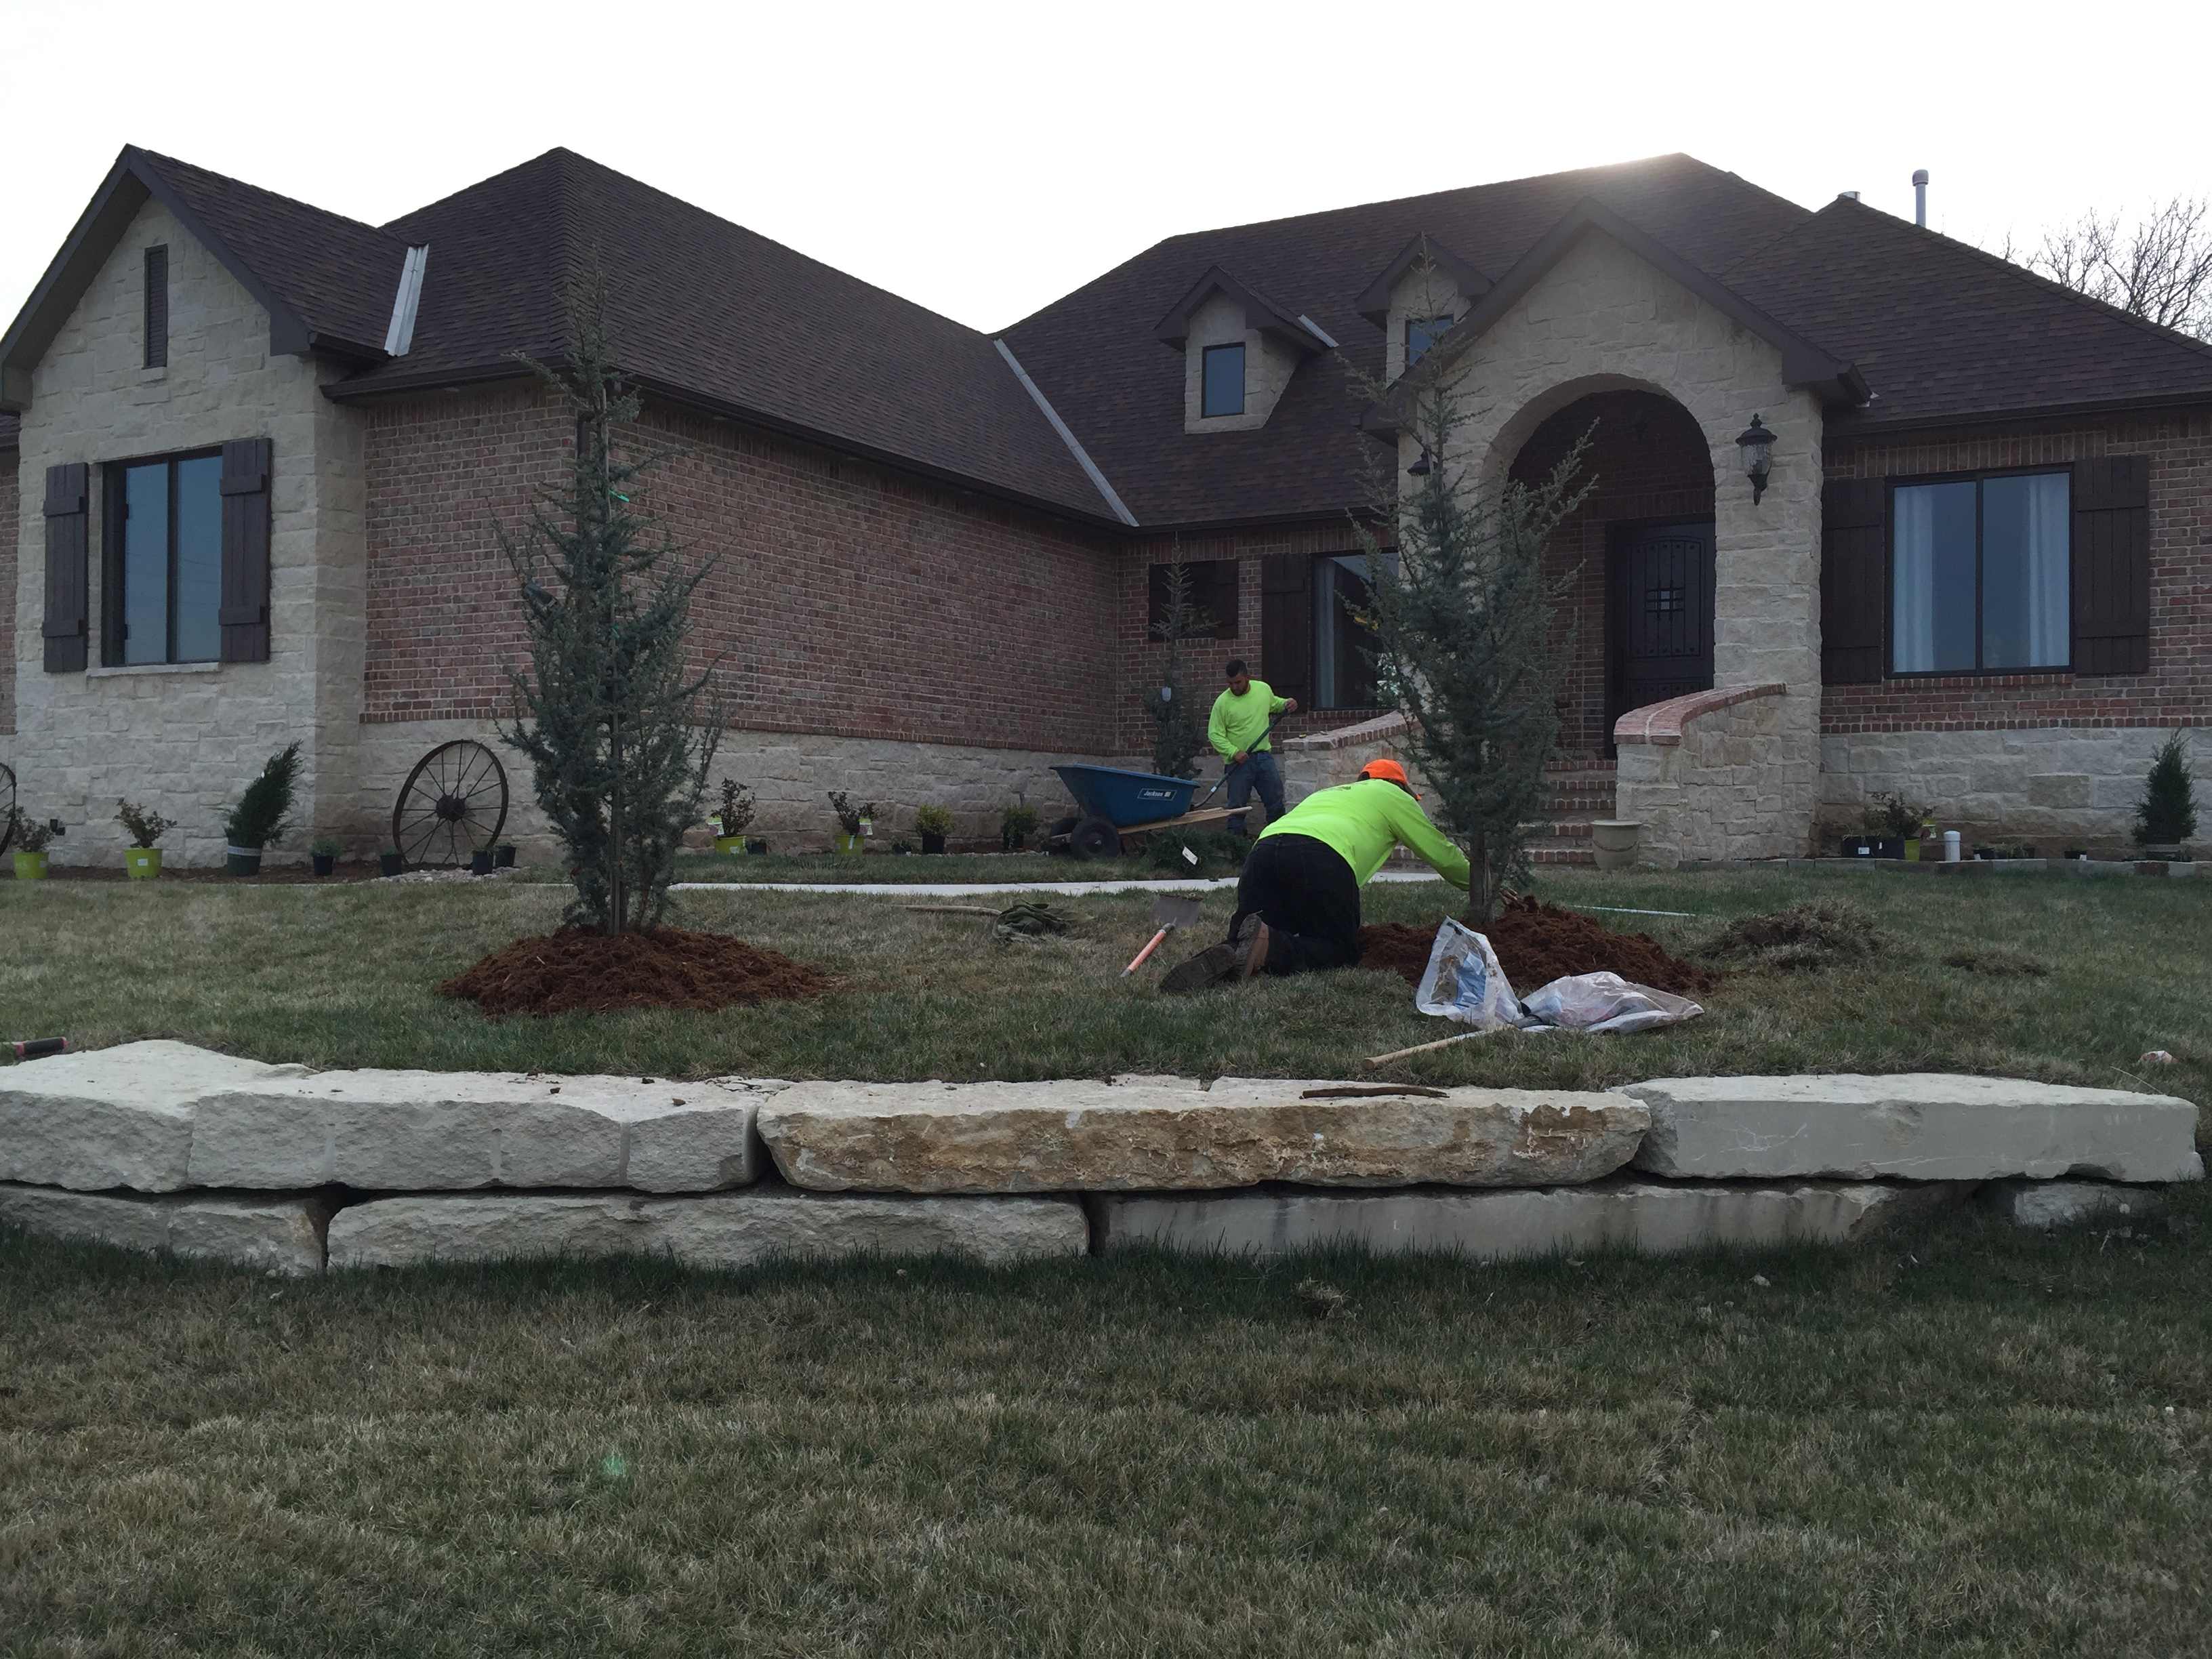 New home landscaping daniels lawn and landscaping services for House landscape